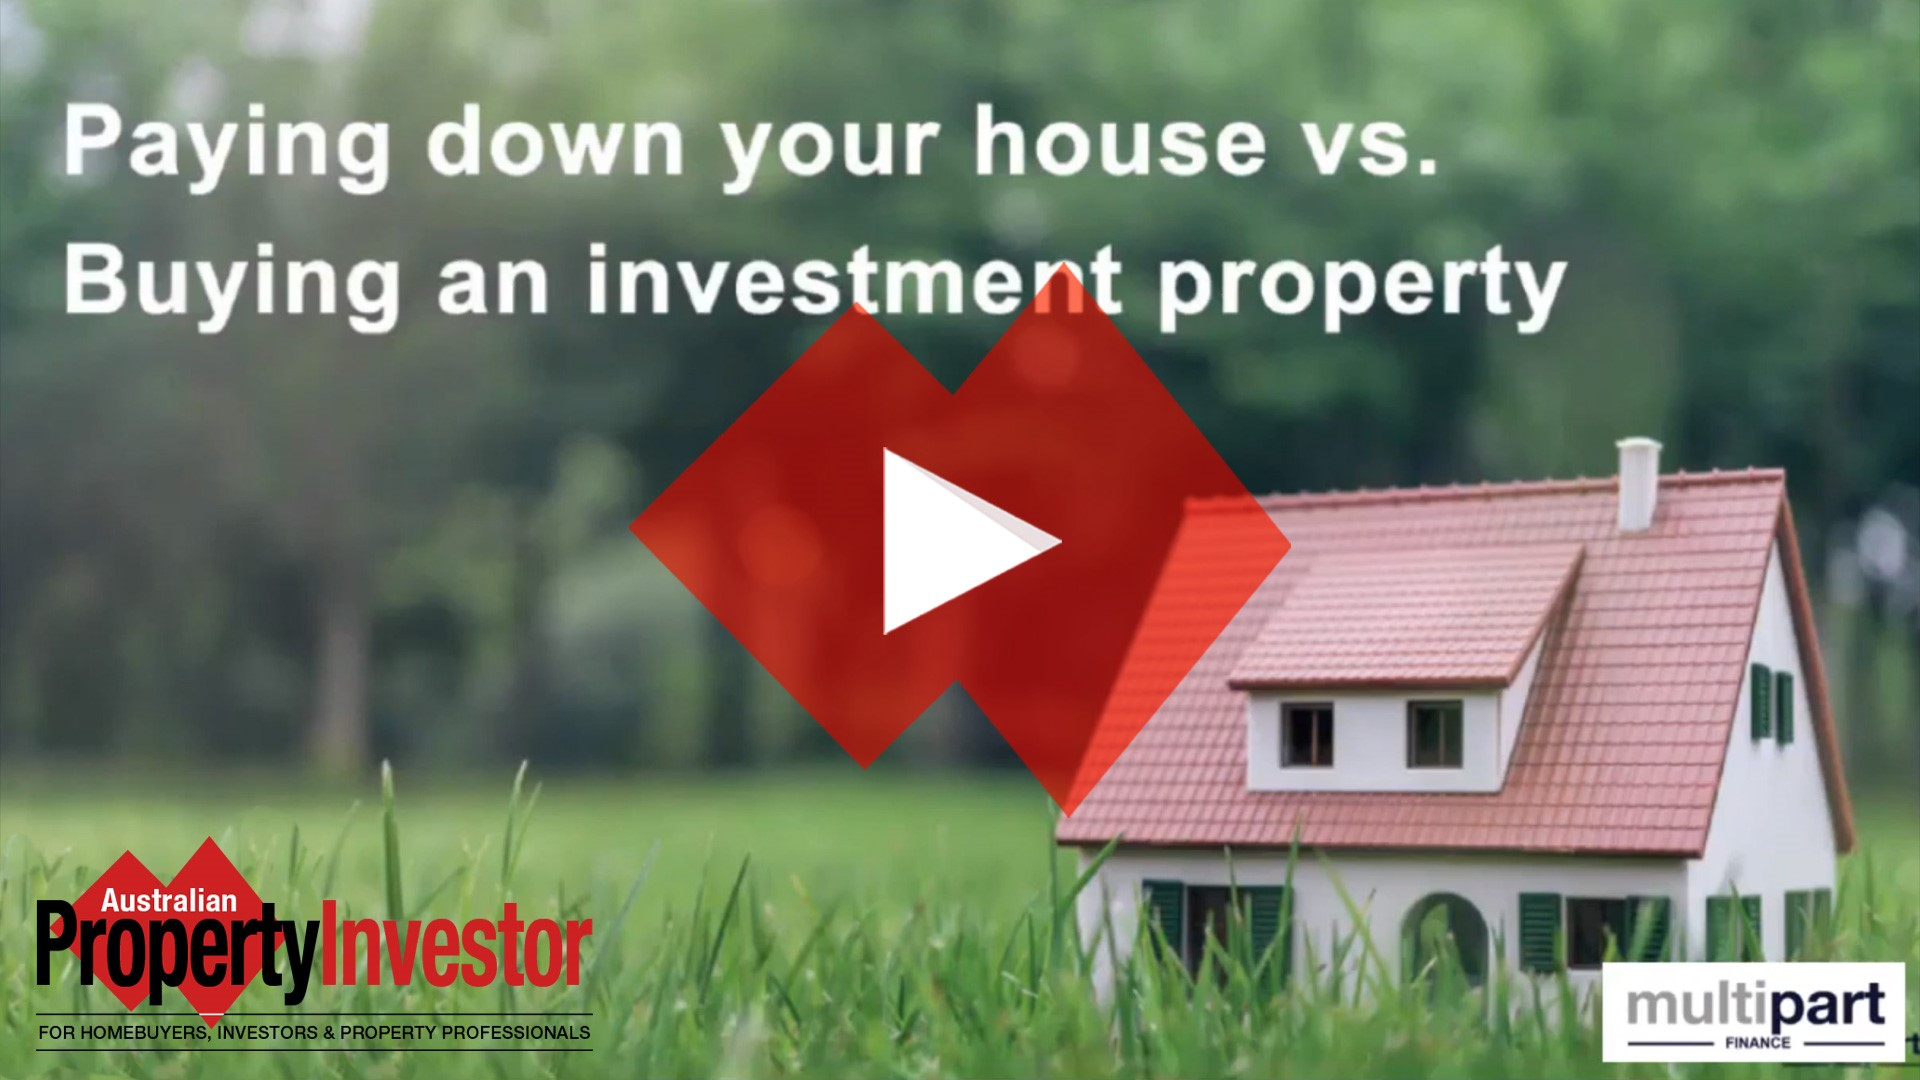 Pay Off Your Home Or Buy An Investment?